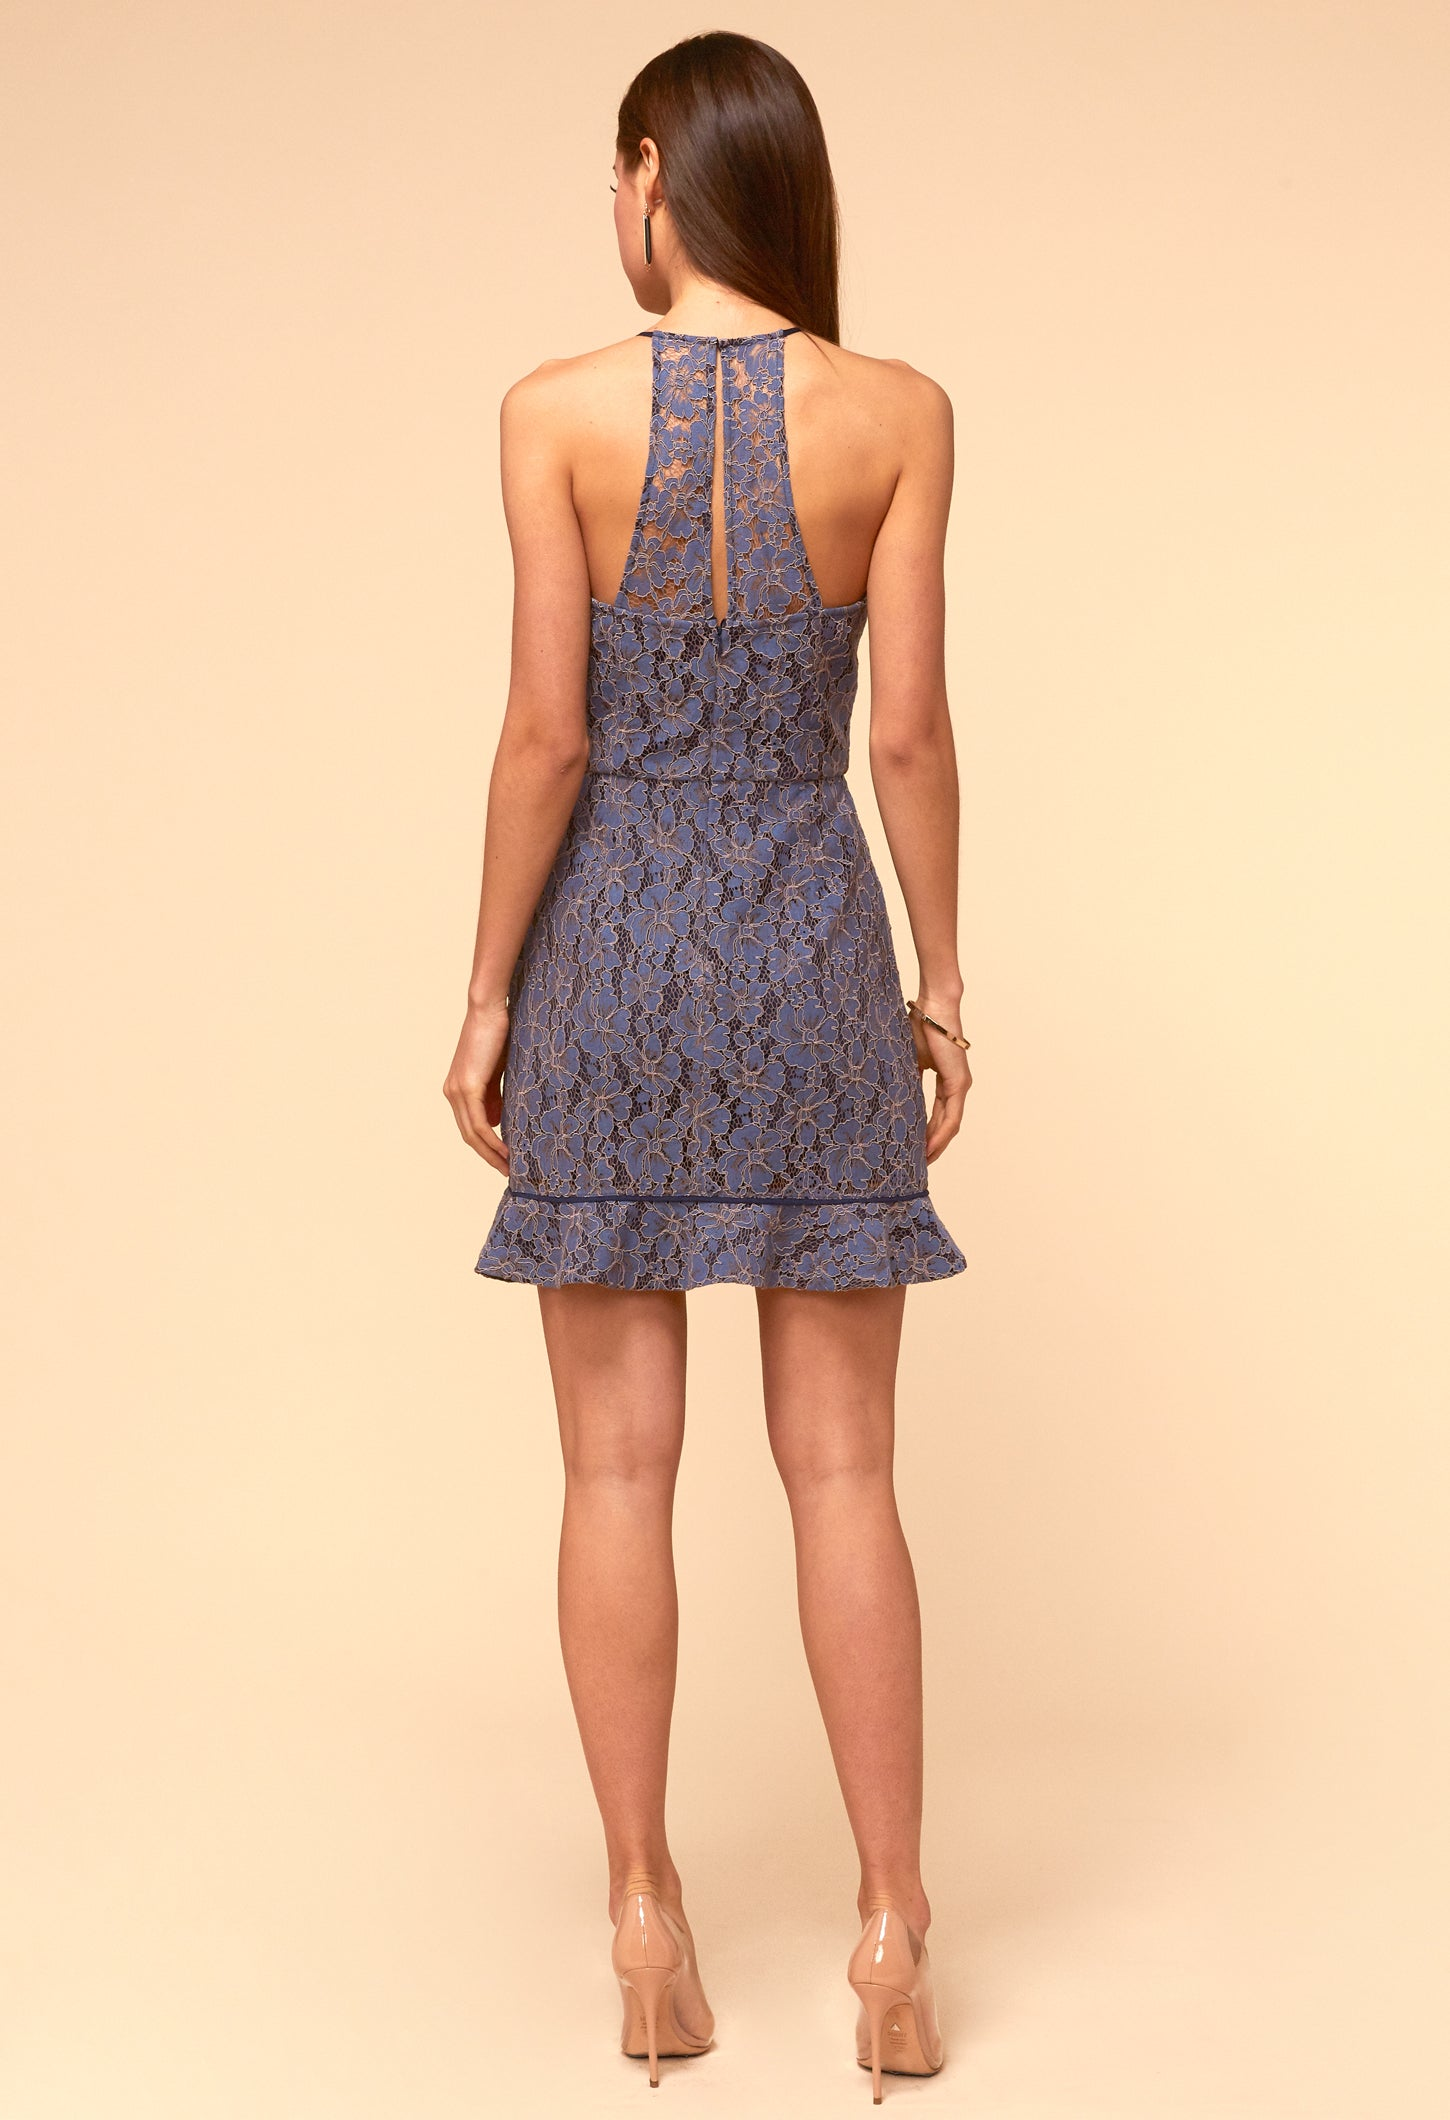 Alicia Halter Dress